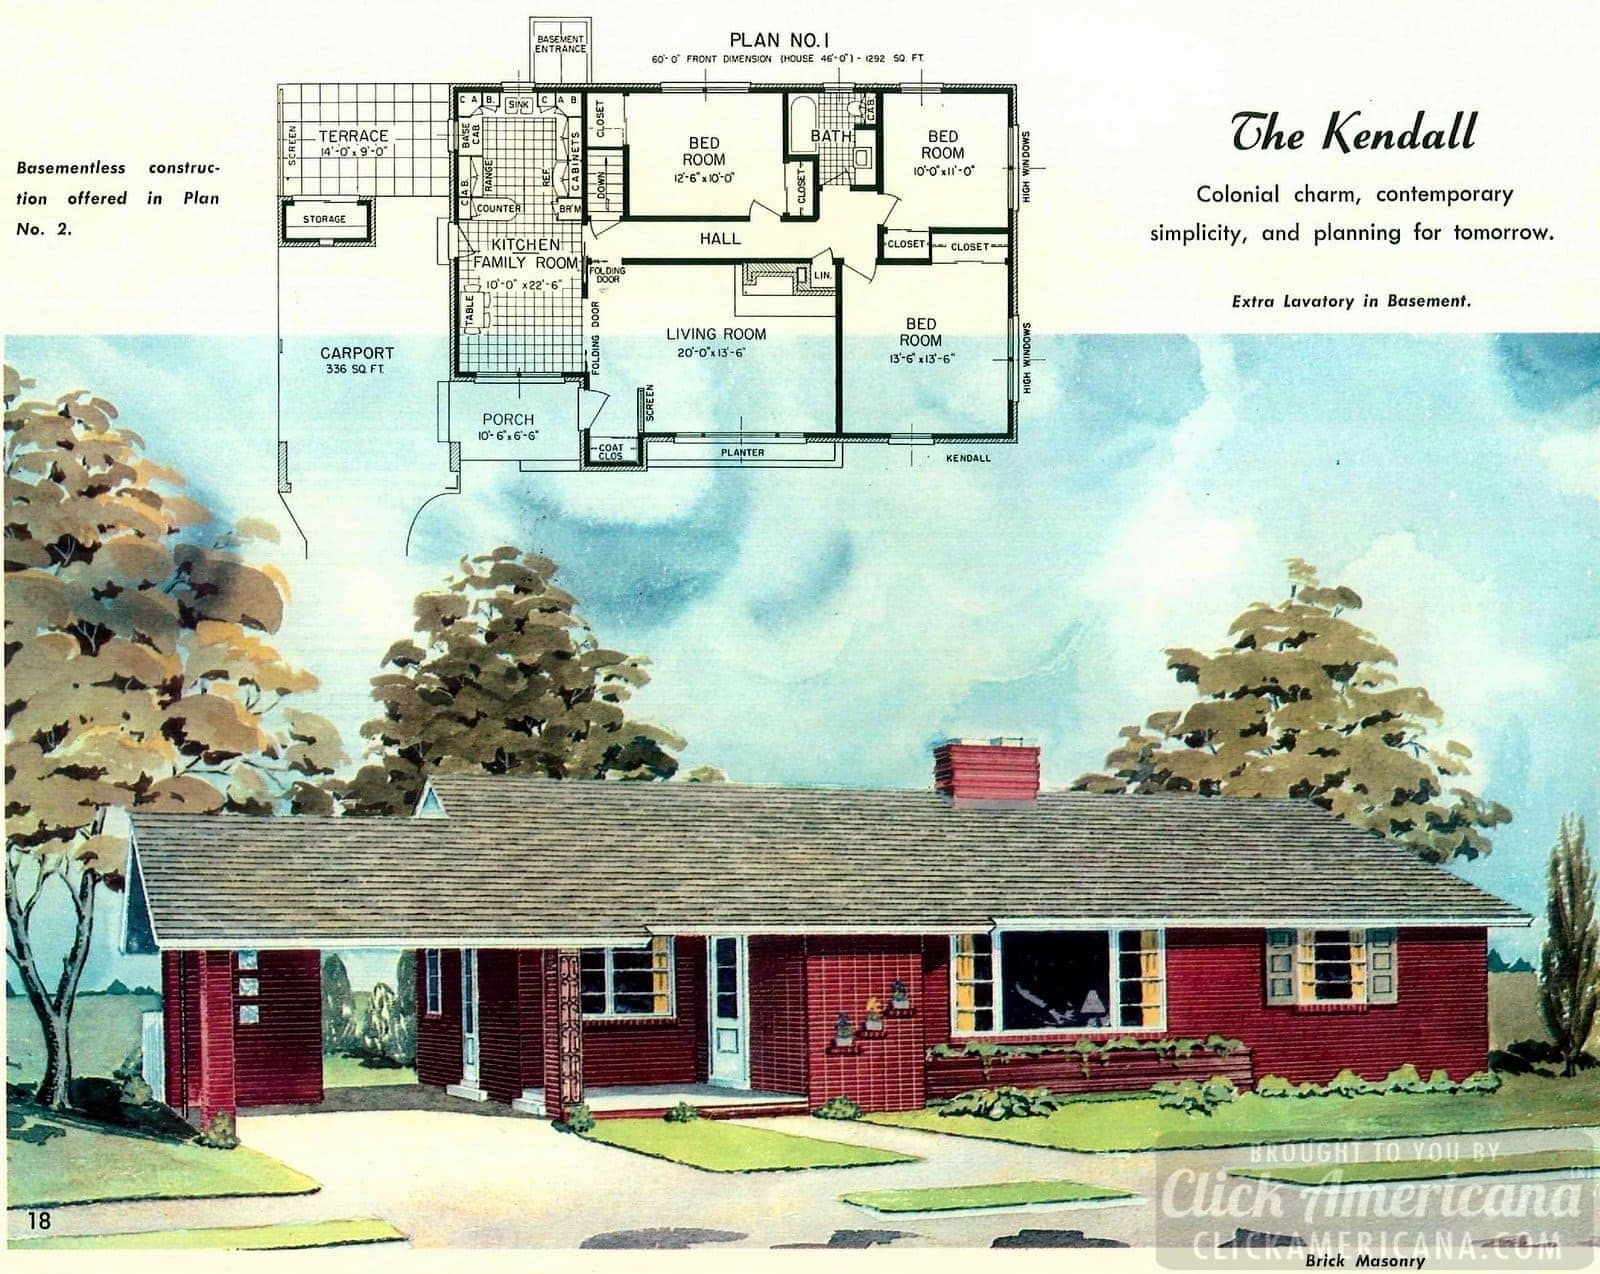 The Kendall: Home design plan from 1958